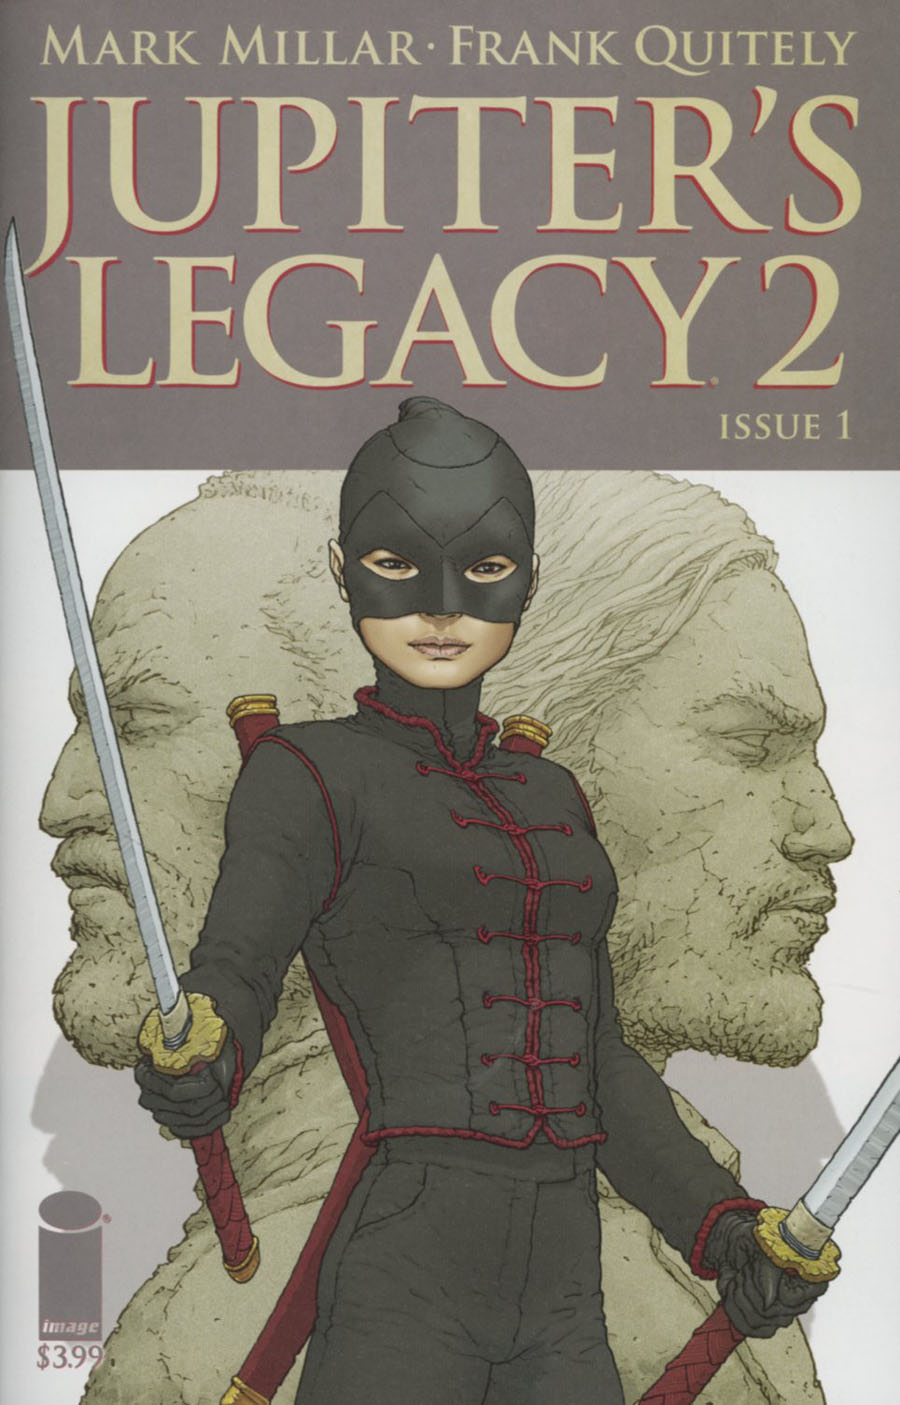 Jupiters Legacy Vol 2 #1 Cover A 1st Ptg Regular Frank Quitely Cover